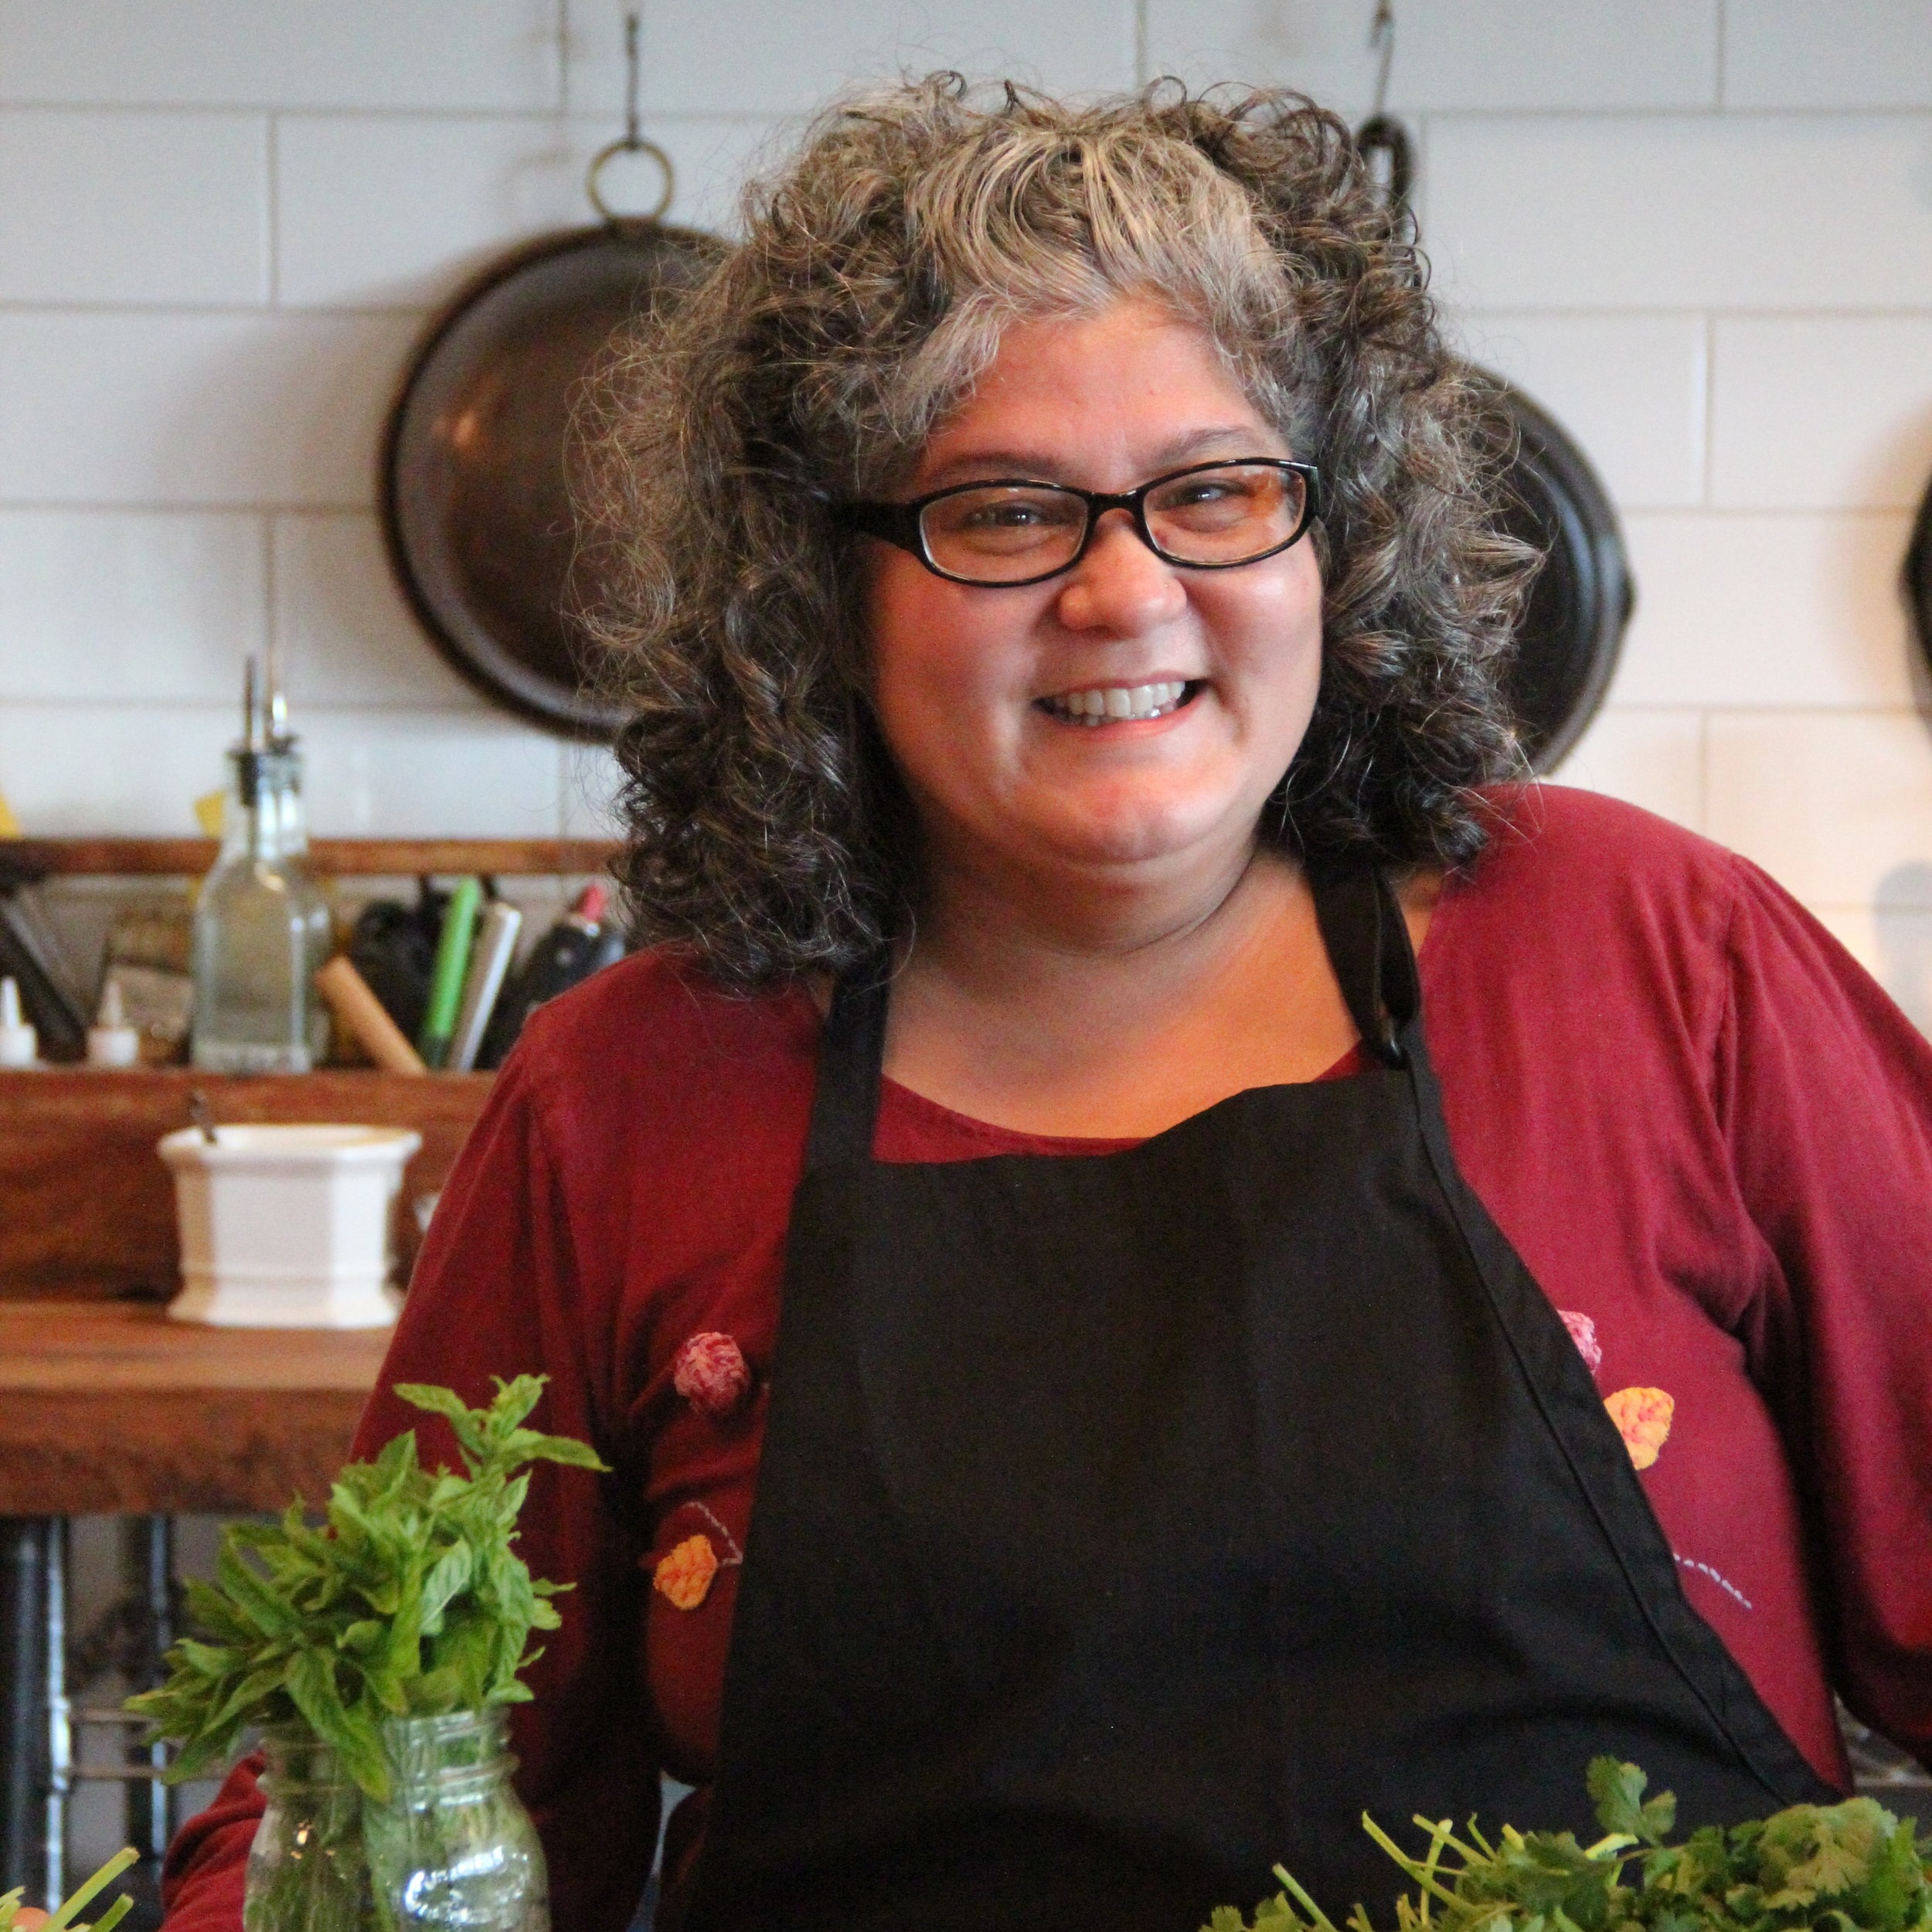 April Galilio   April hails from a Punjabi household which is in the Northern region of India, the land of Butter Chicken and Channa Masala. She has spent 40 years on an adventurous journey in researching, learning, and developing recipes from around the world. She left the corporate world 8 years ago, and has focused on turning her passion for food into a career.  Enjoy cooking with April over a cup of Masala Chai, and learn about the fascinating world of Indian cuisine and its history. She will show you how to prepare everything from village foods, street cart dishes, and classic Indian favorites.